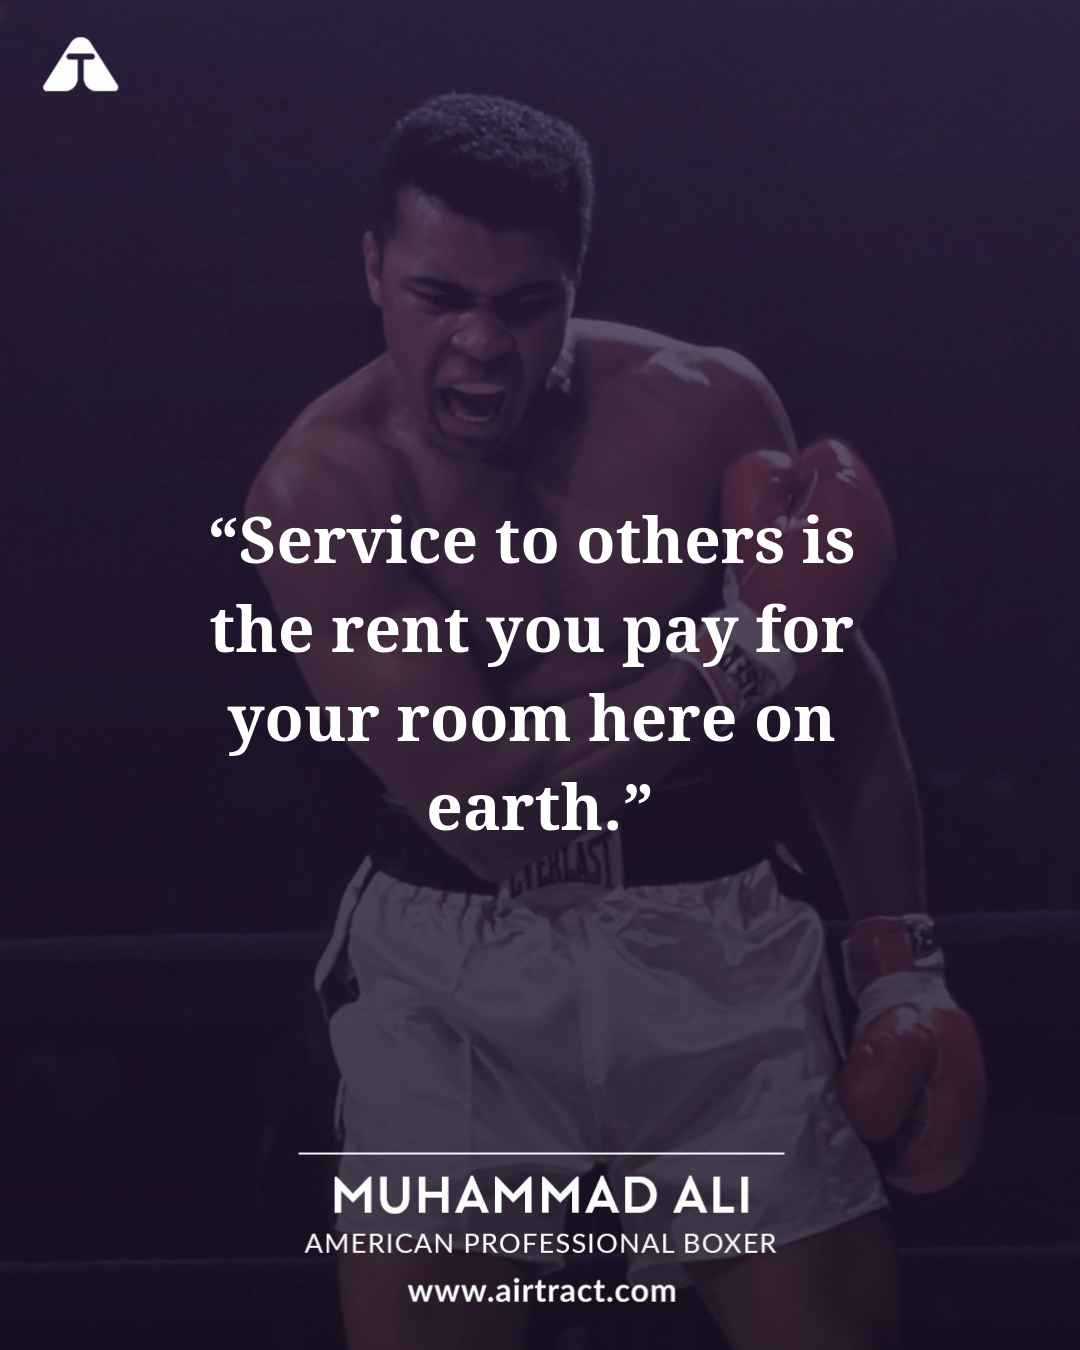 Top 20 Greatest Muhammad Ali Quotes | AirTract